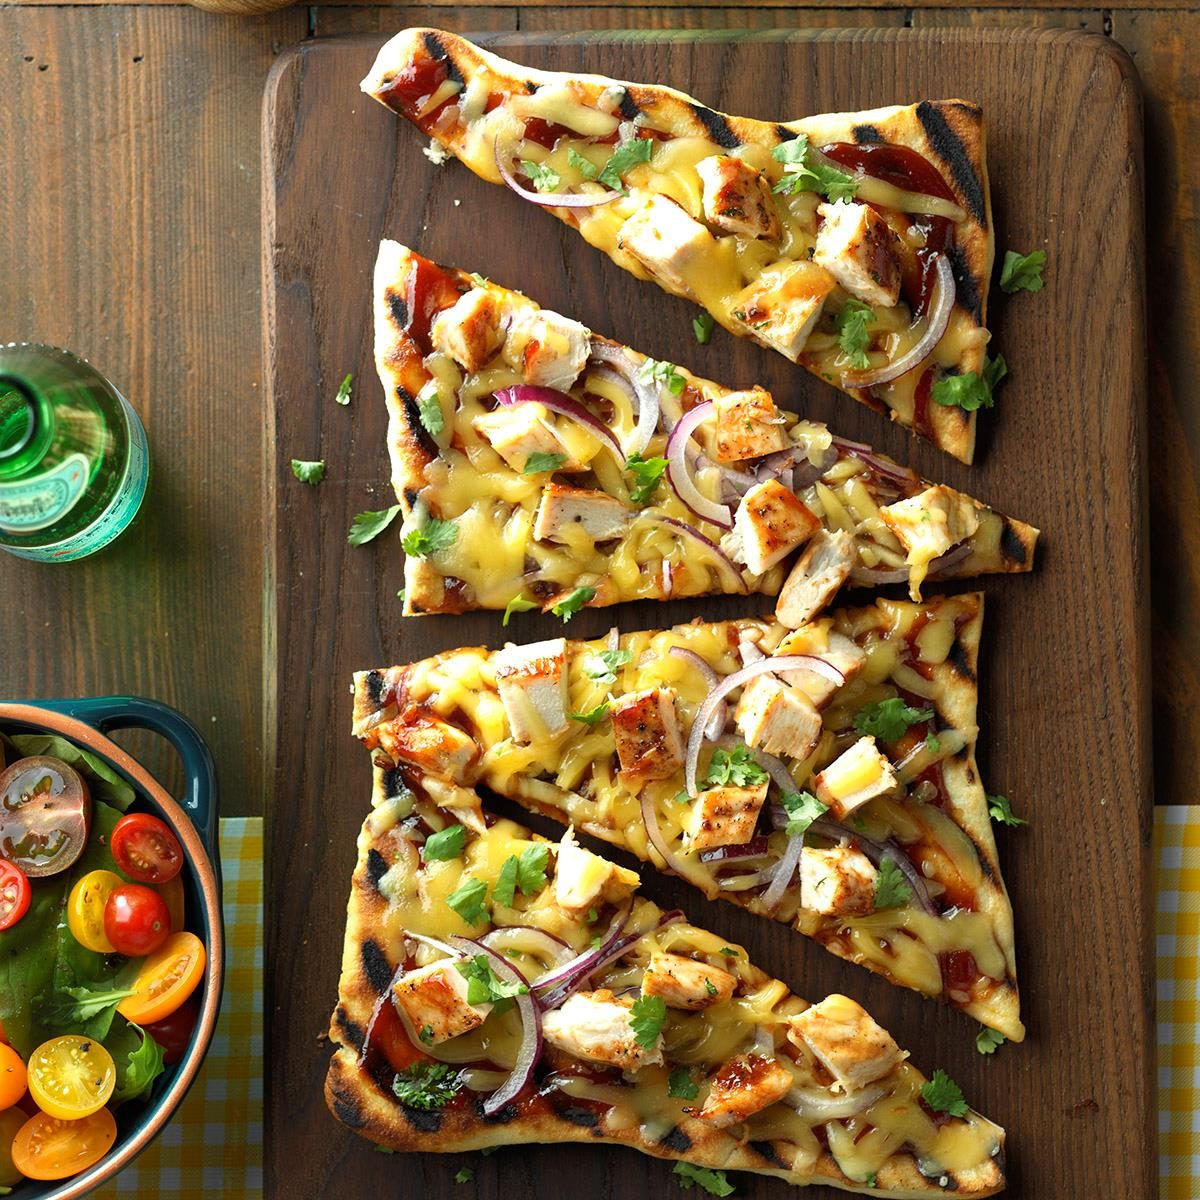 Inspired by: California Pizza Kitchen BBQ Chicken Pizza